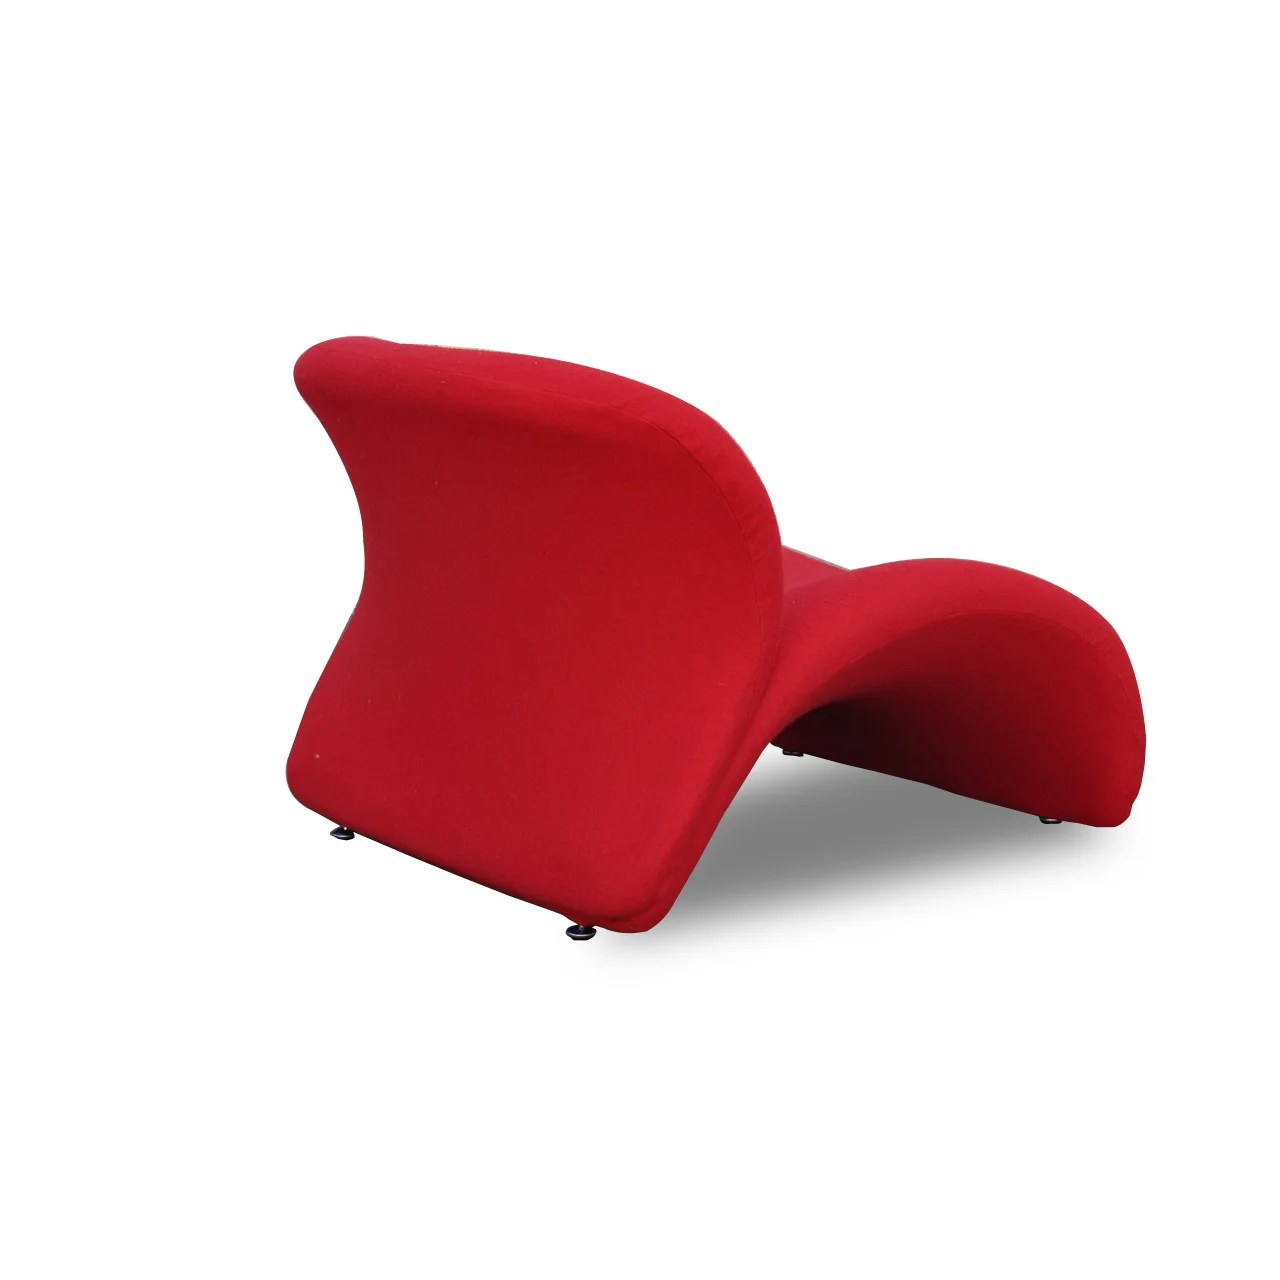 Lip Chair Ceets Sweet Lip Lounge Chair And Reviews Wayfair